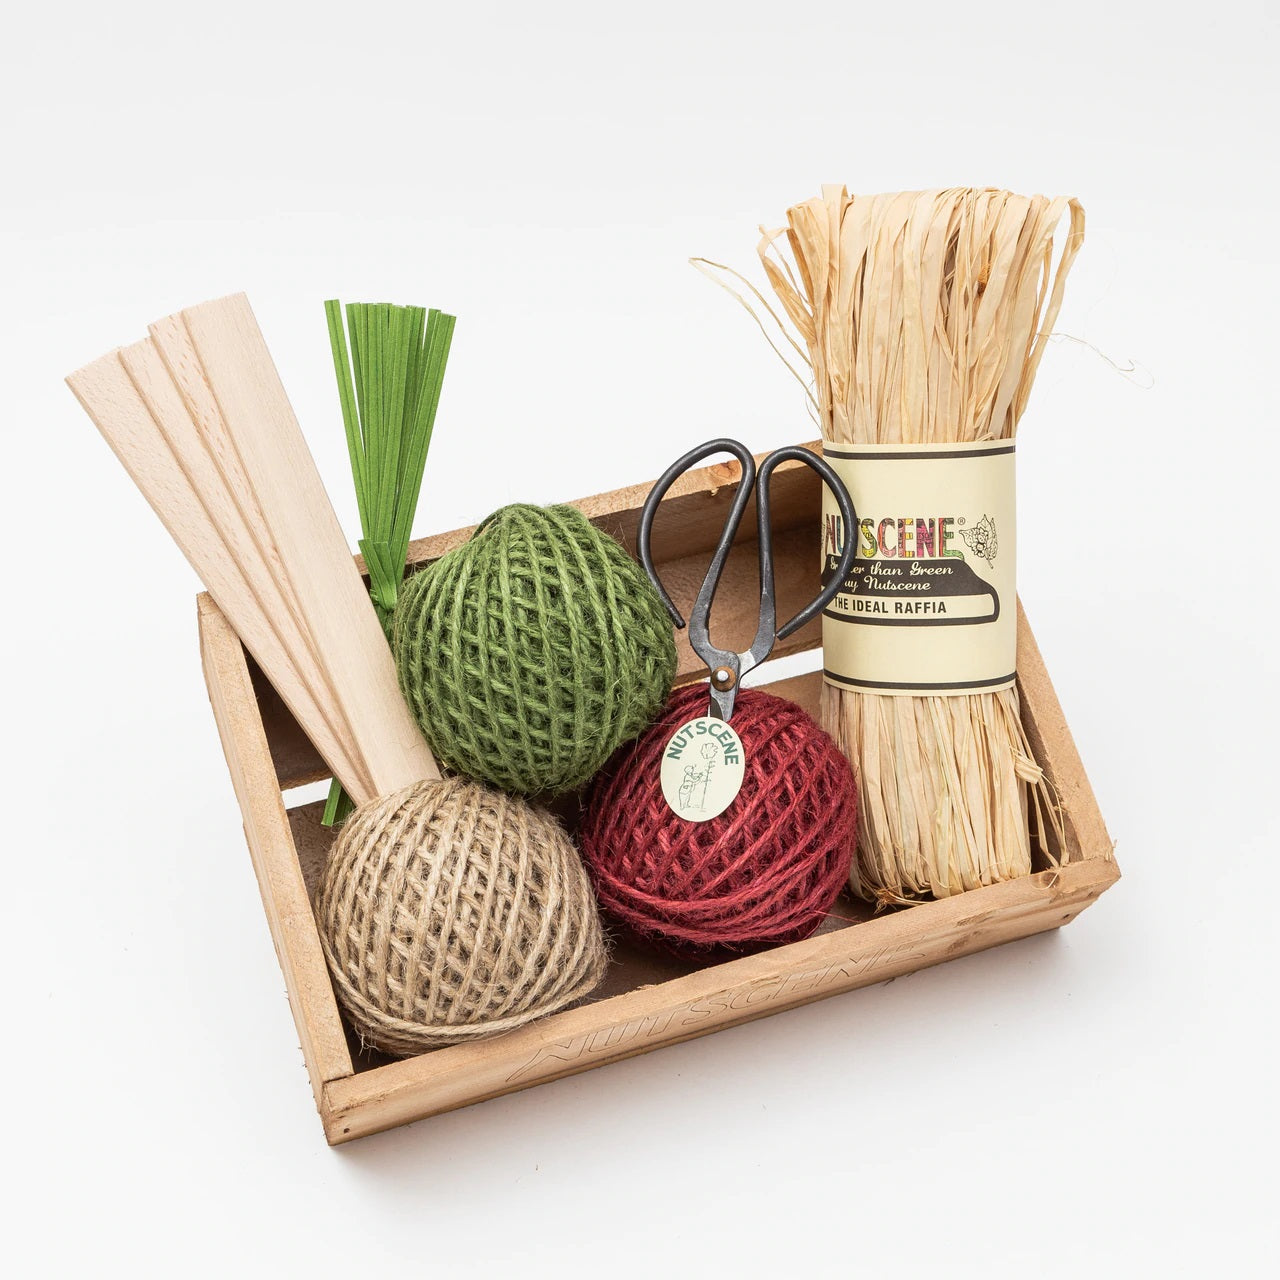 Reclaimed Wooden Tray Gift Set With Twine, Scissors and More